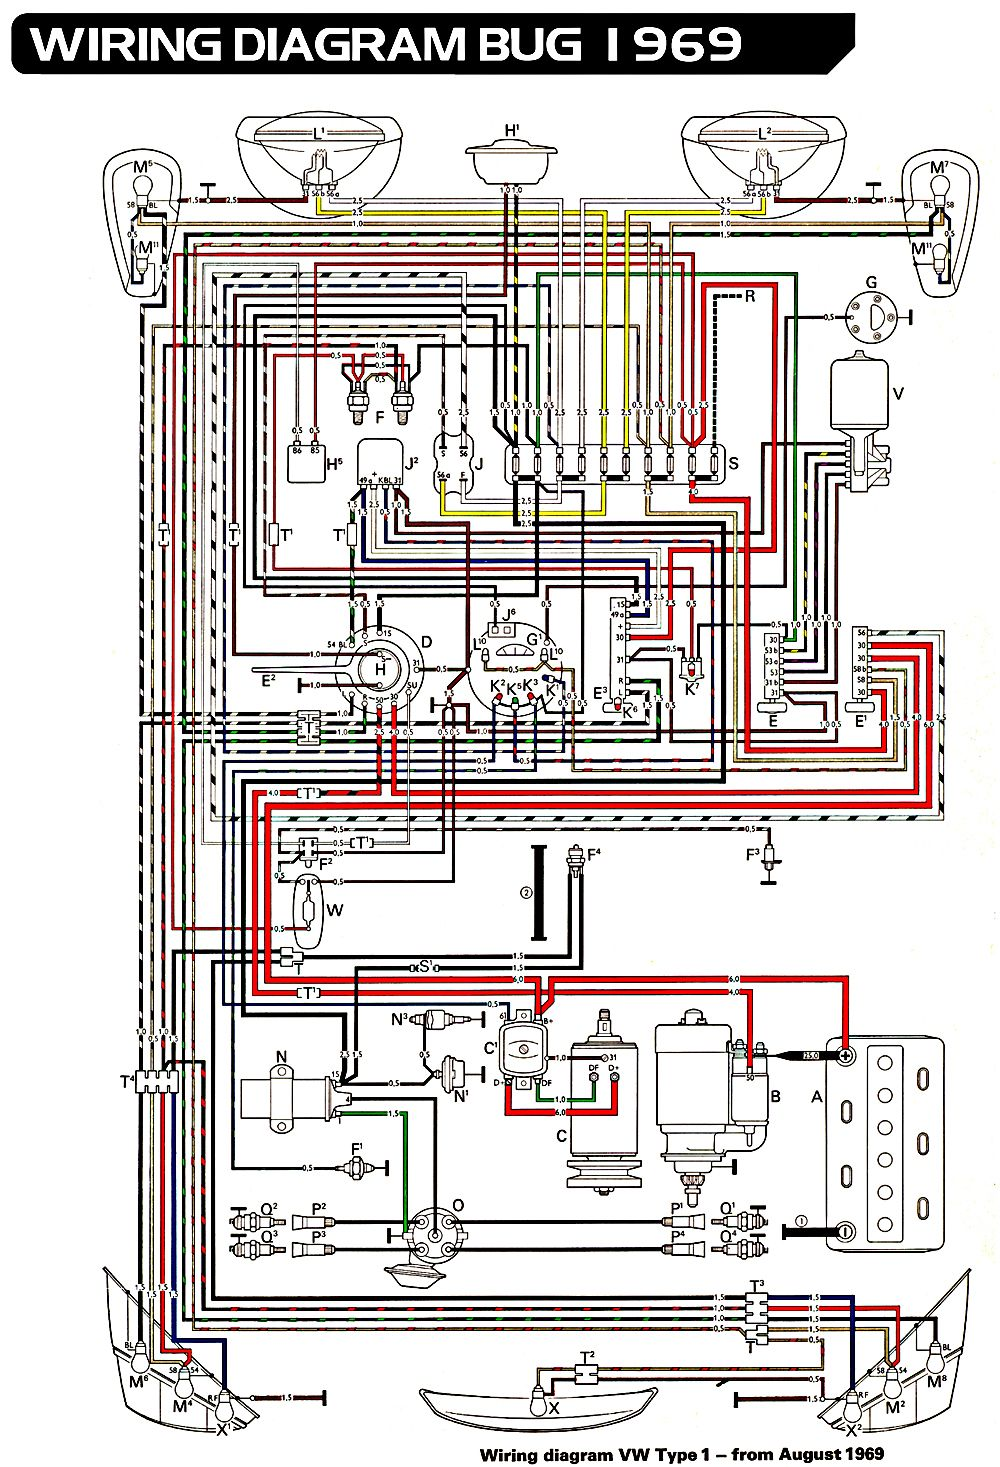 6d75c15875479254f26a32a8499d9044 69 vw bug wiring diagram 1970 vw beetle wiring \u2022 wiring diagrams Volkswagen Type 2 Wiring Harness at mifinder.co